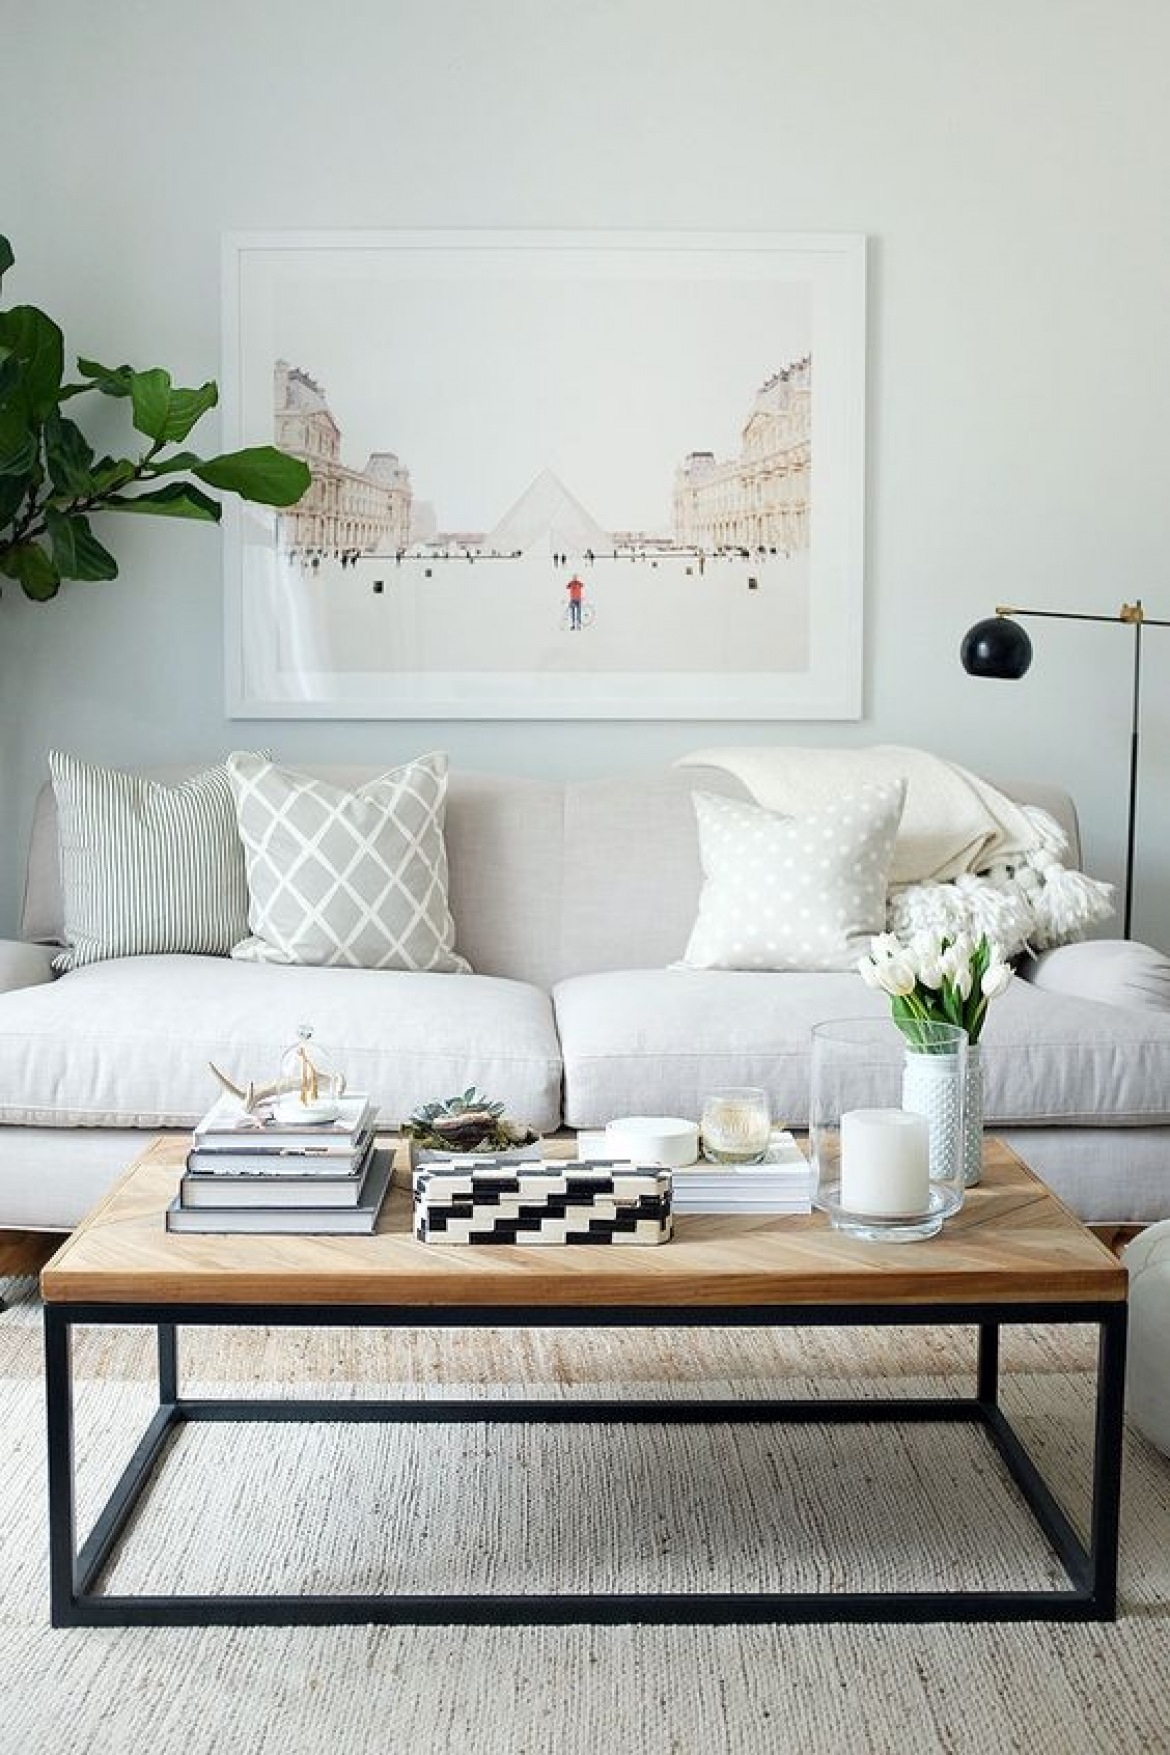 Living Room Ideas A Modern Coffee Table f Your French Pressed Coffee_2 modern coffee table Living Room Ideas: A Modern Coffee Table f/ Your French Pressed Coffee Living Room Ideas A Modern Coffee Table f Your French Pressed Coffee 4